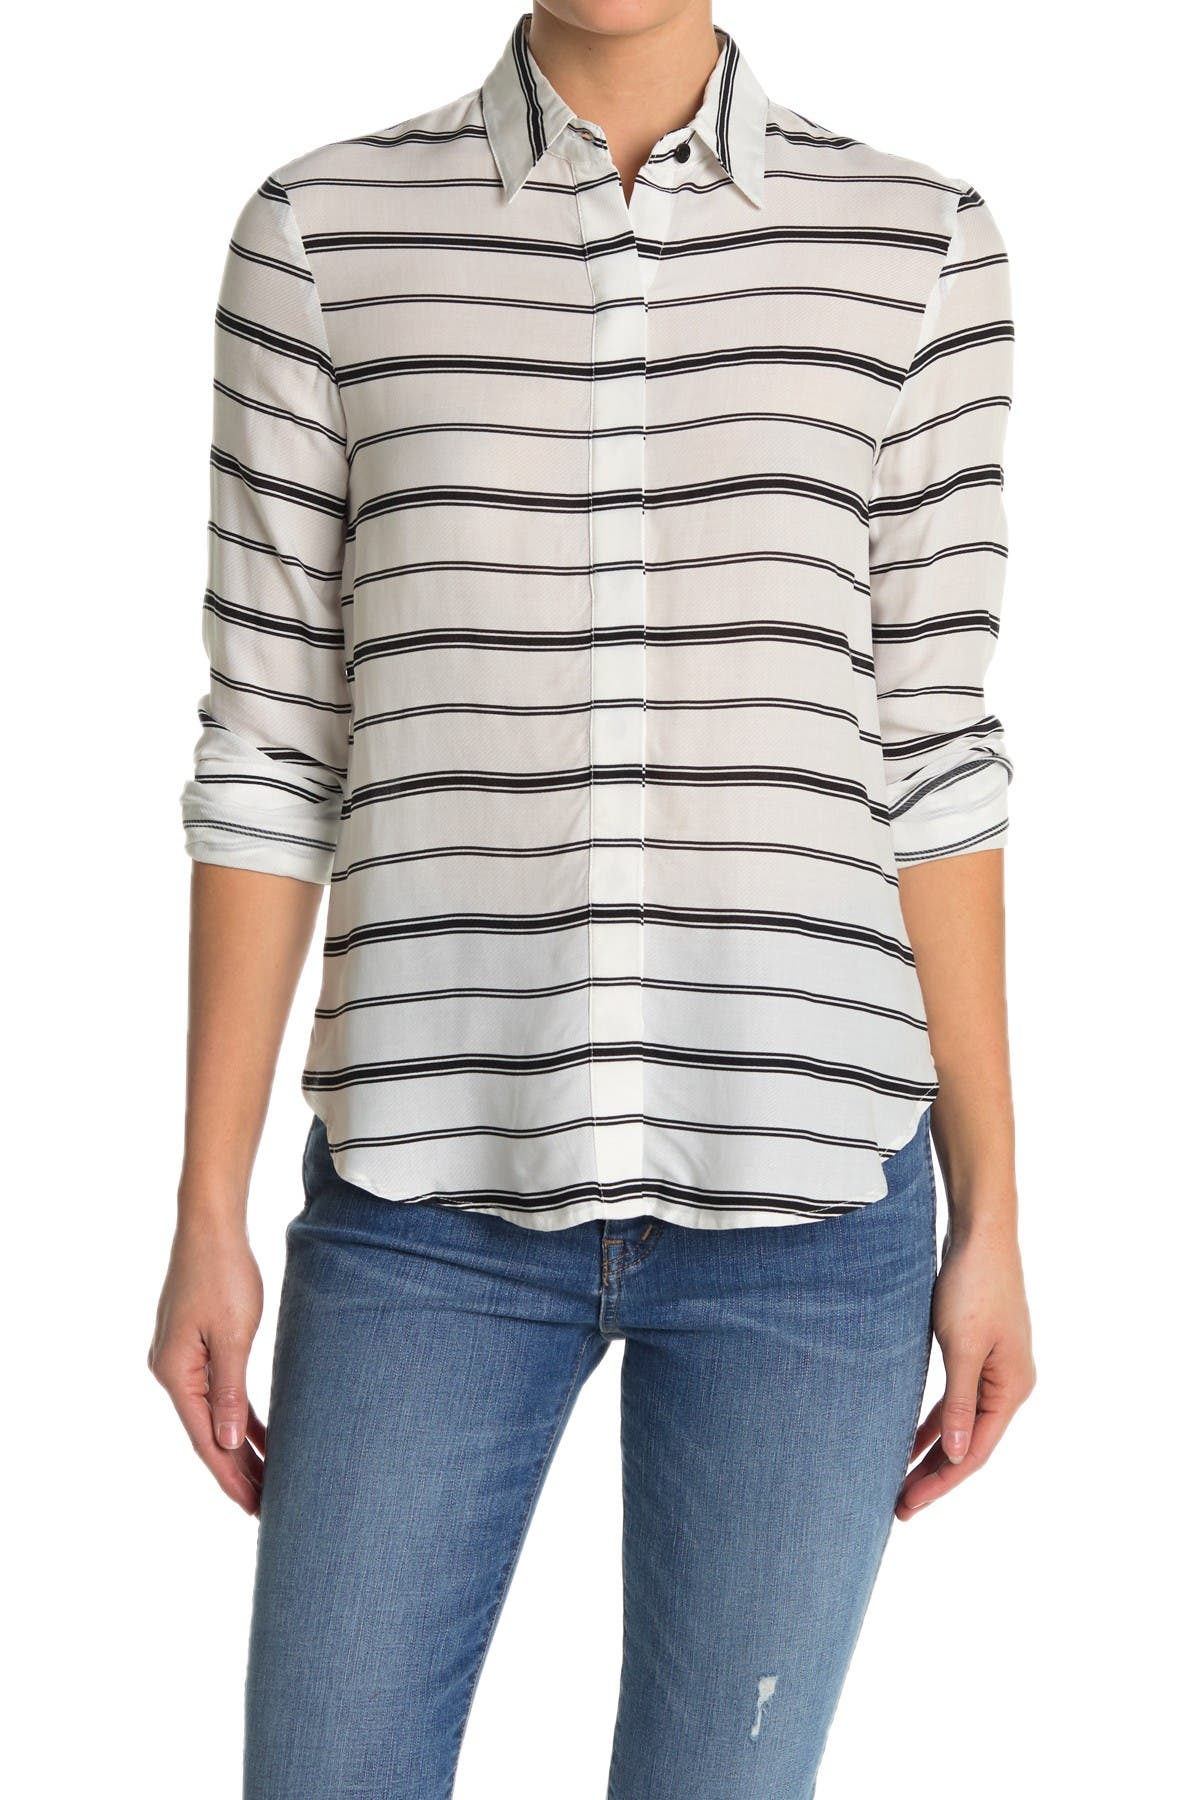 Image of BB Dakota Behind the Lines Striped Long Sleeve Blouse